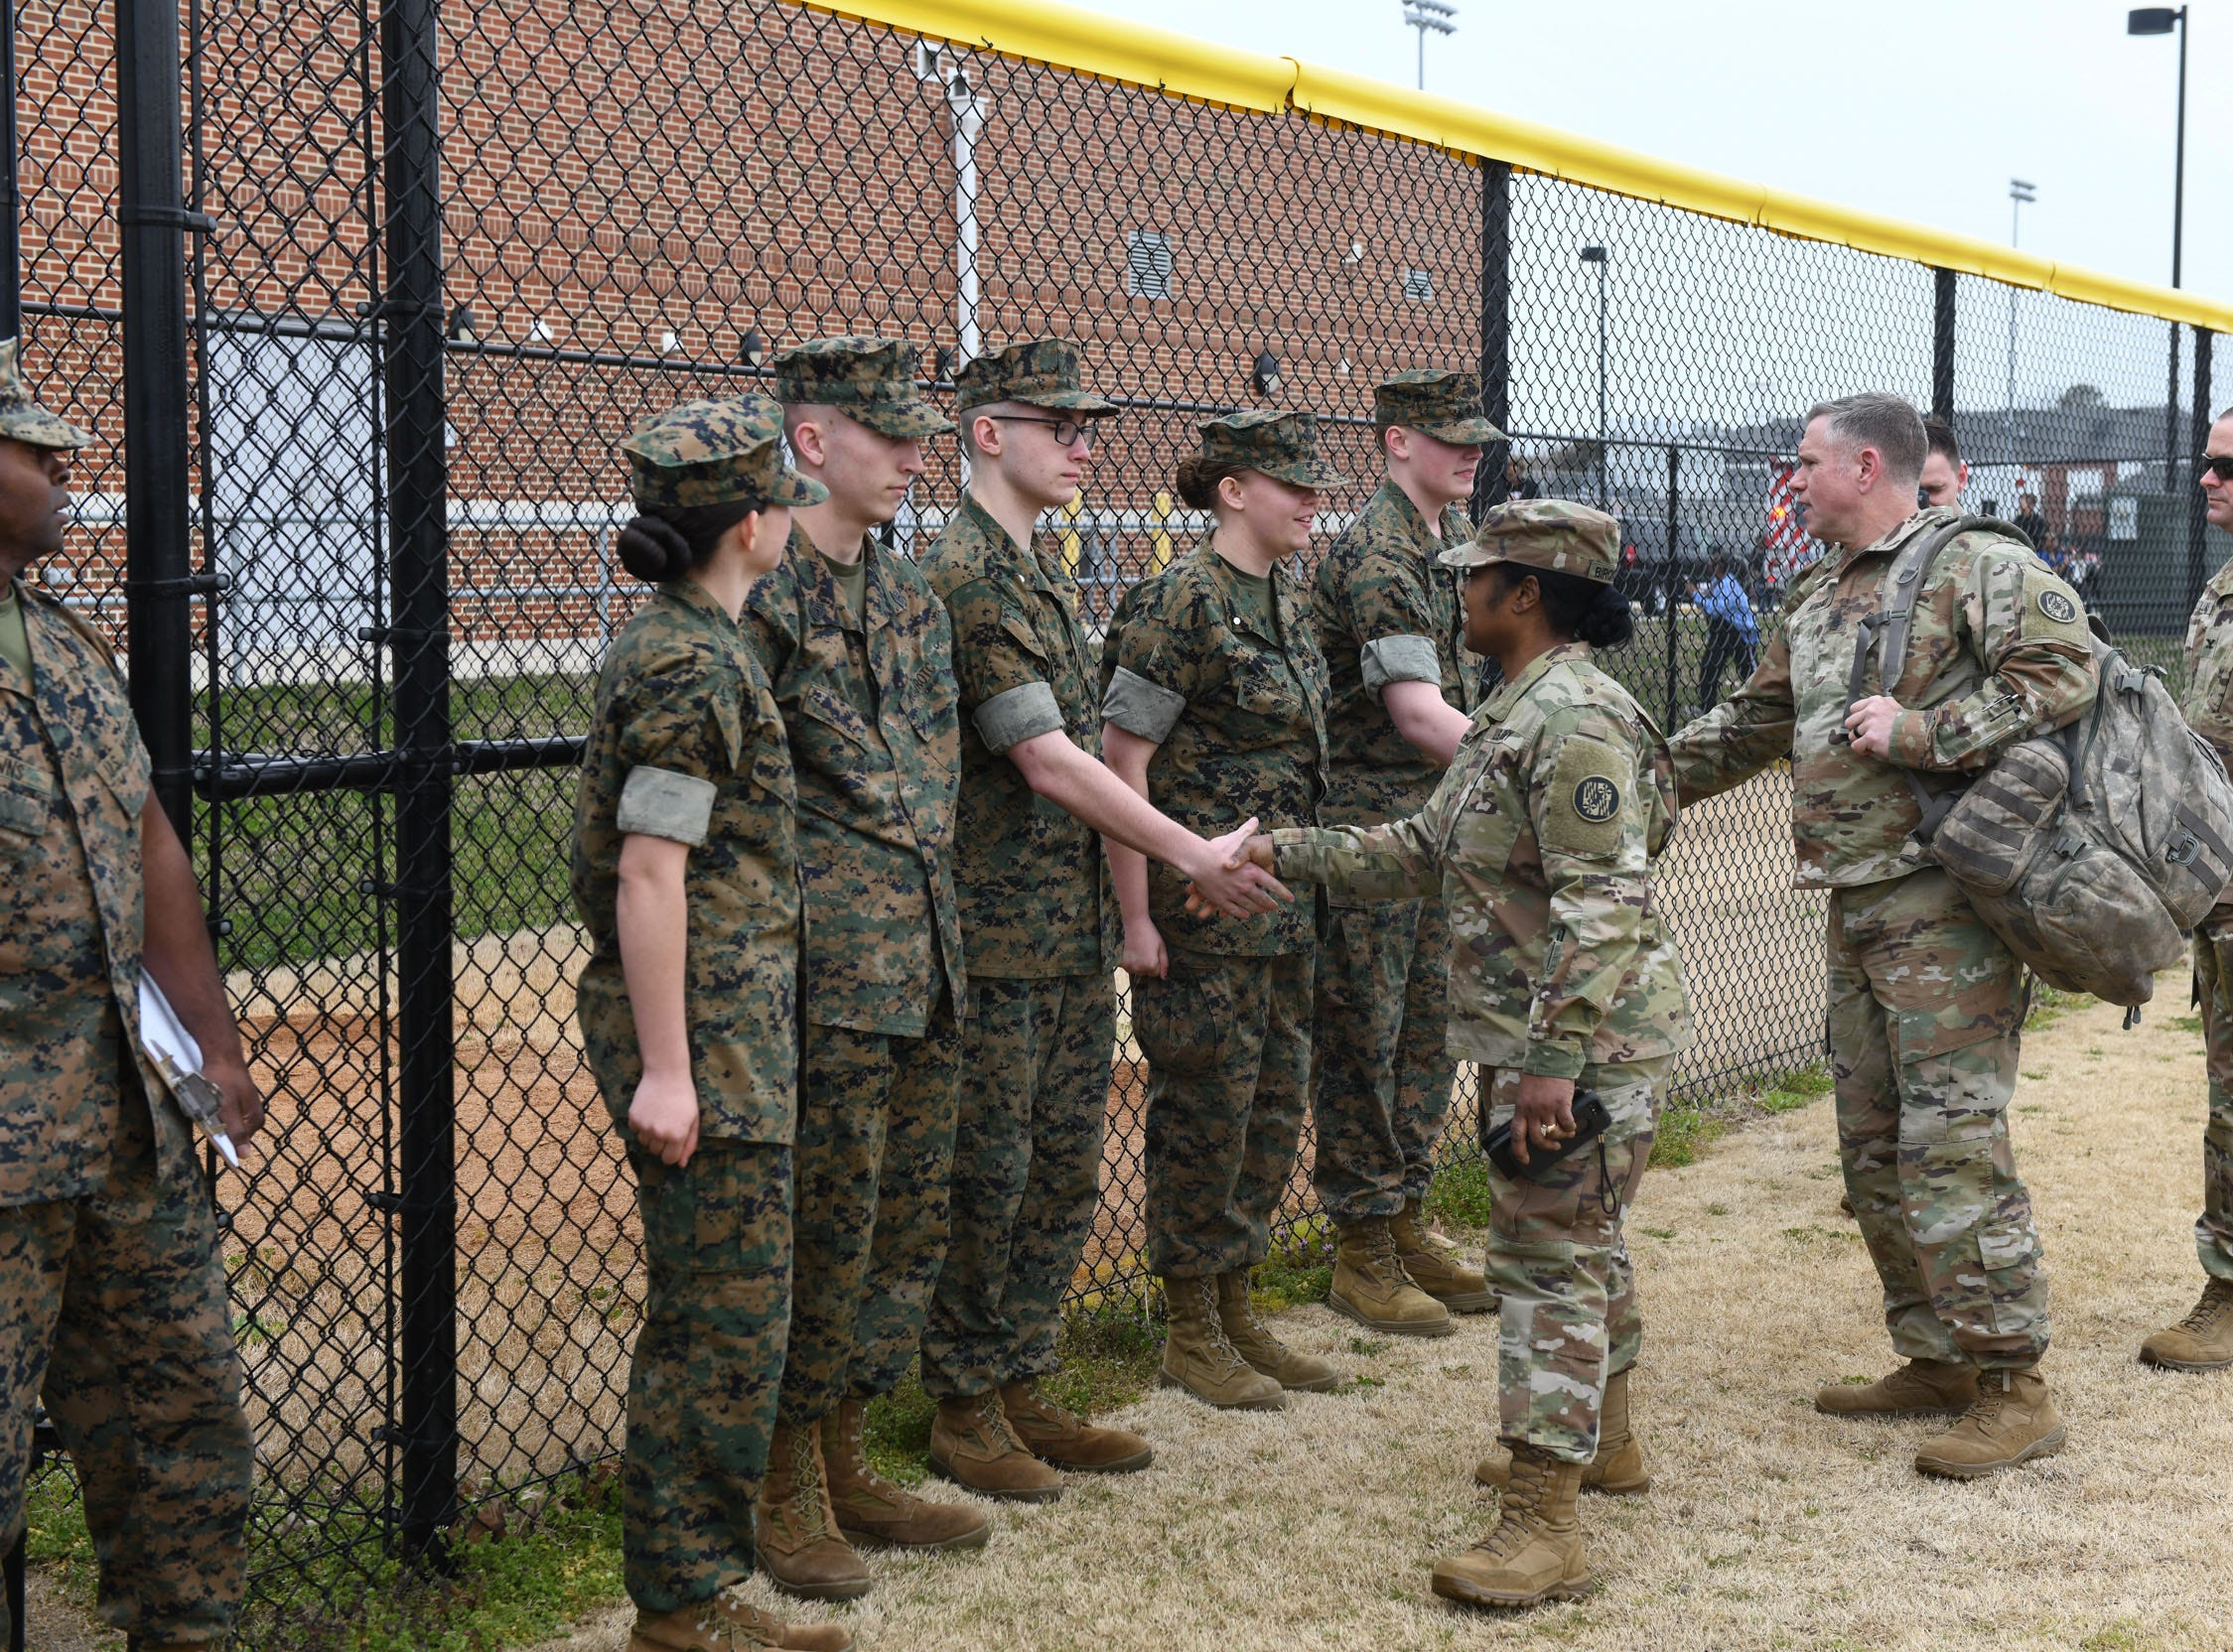 Snow Hill High School MCJROTC greats Snow Hill Alumni General Janeen Birckhead and her team landed on the baseball field in a UH60 Black Hawk helicopter on Friday, April 5, 2019.